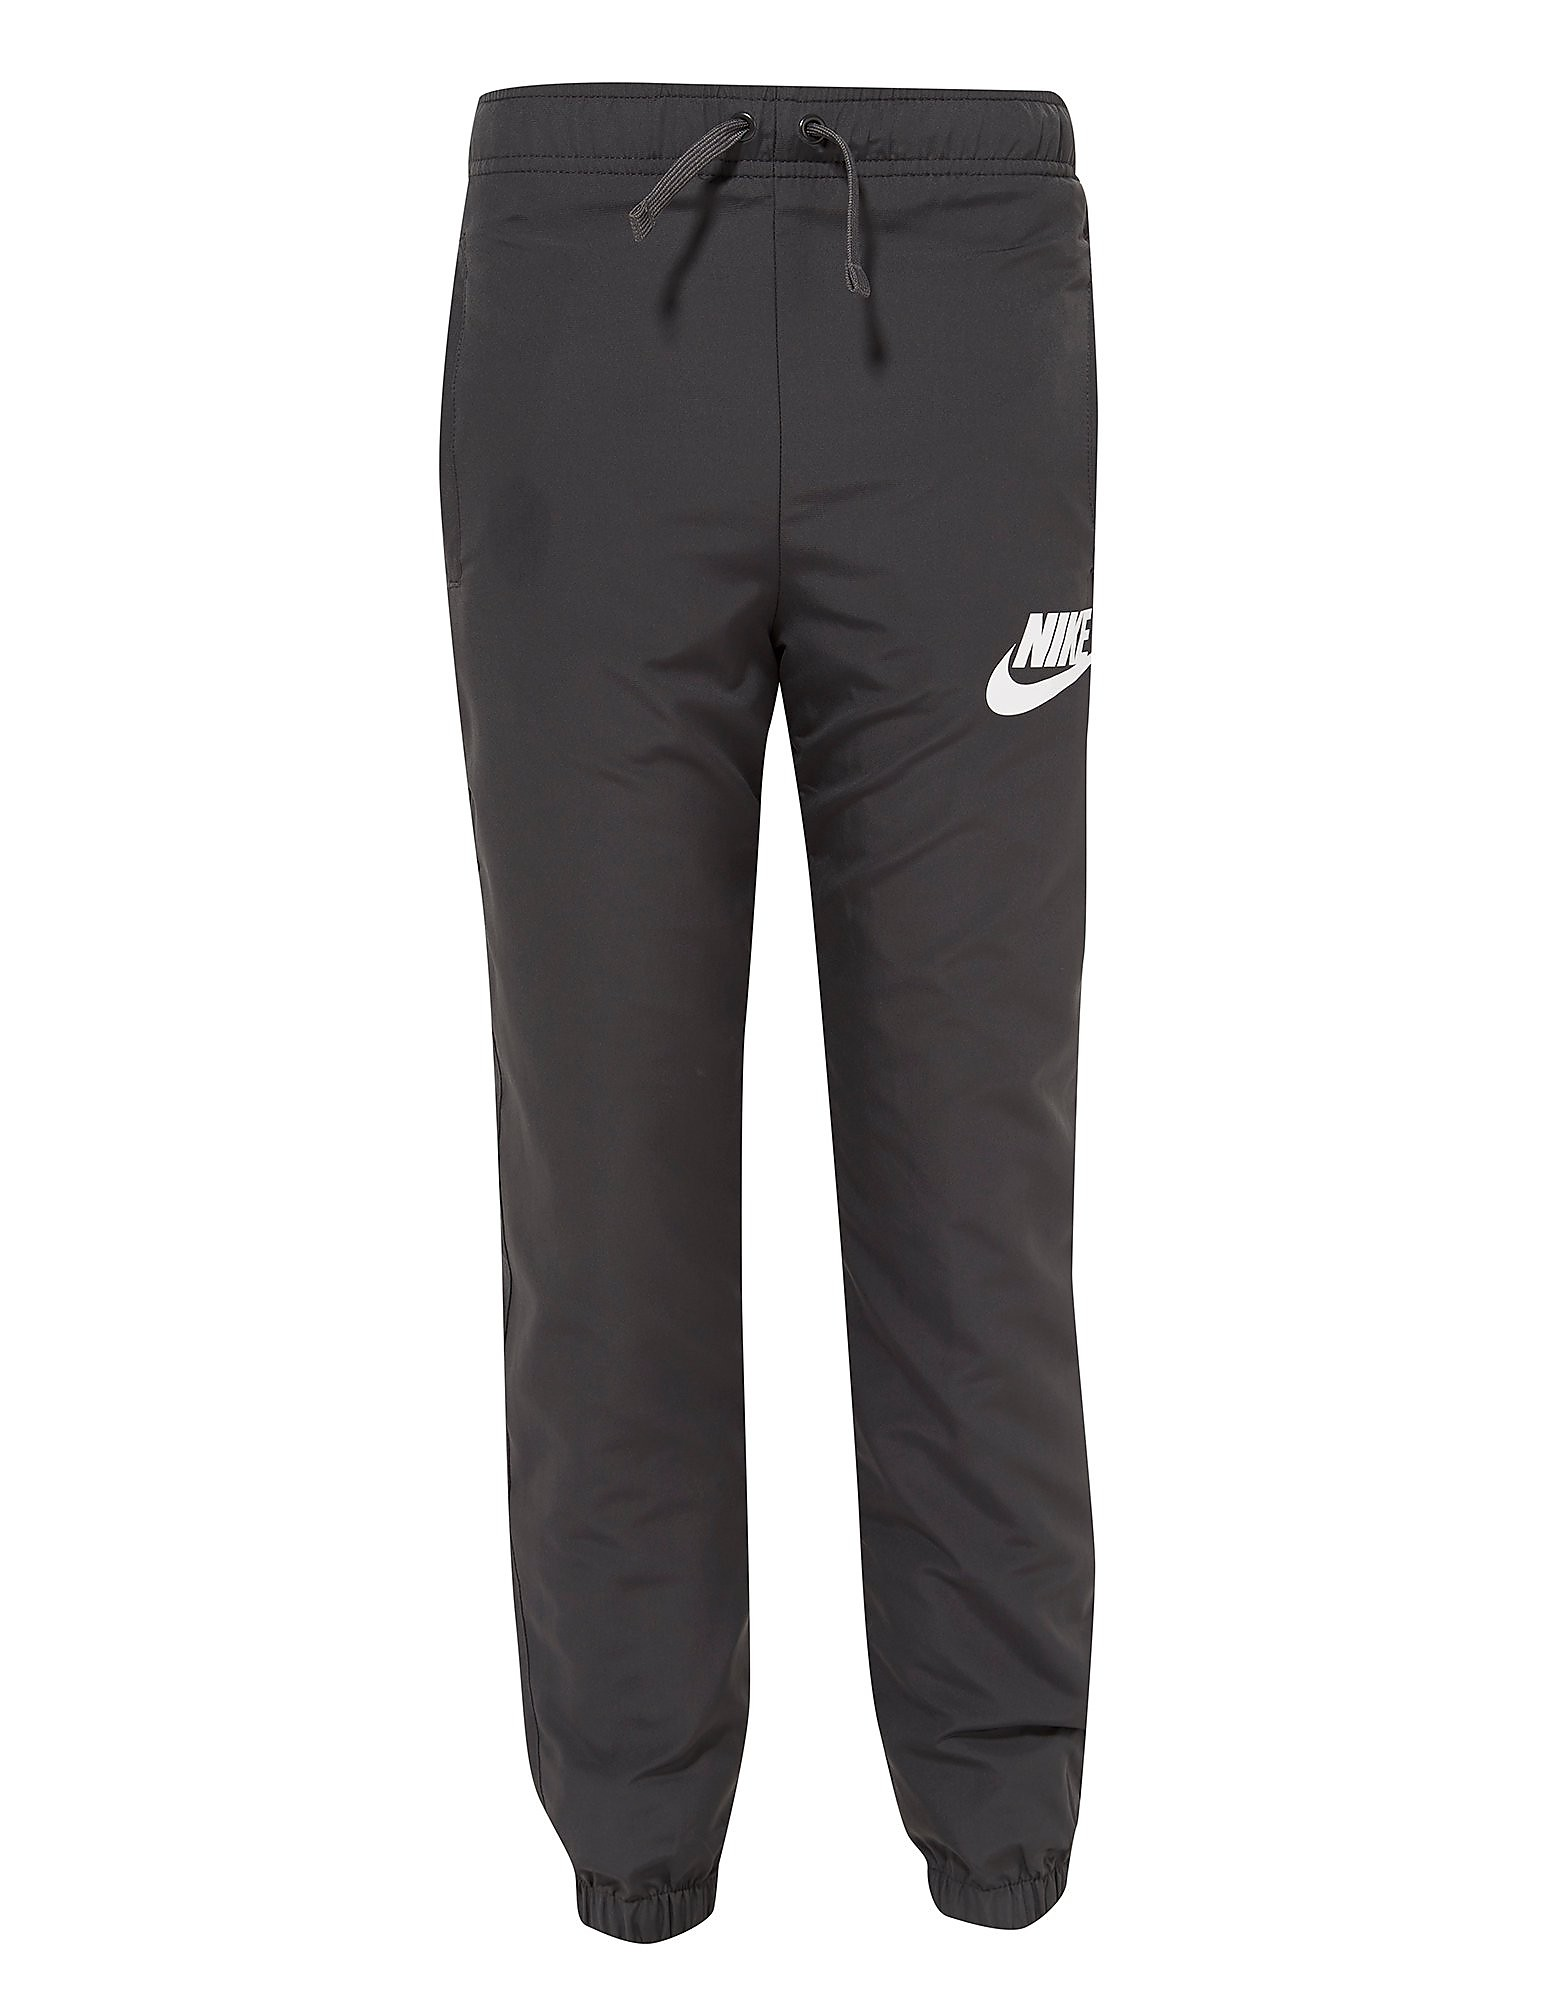 Nike Winger Pants